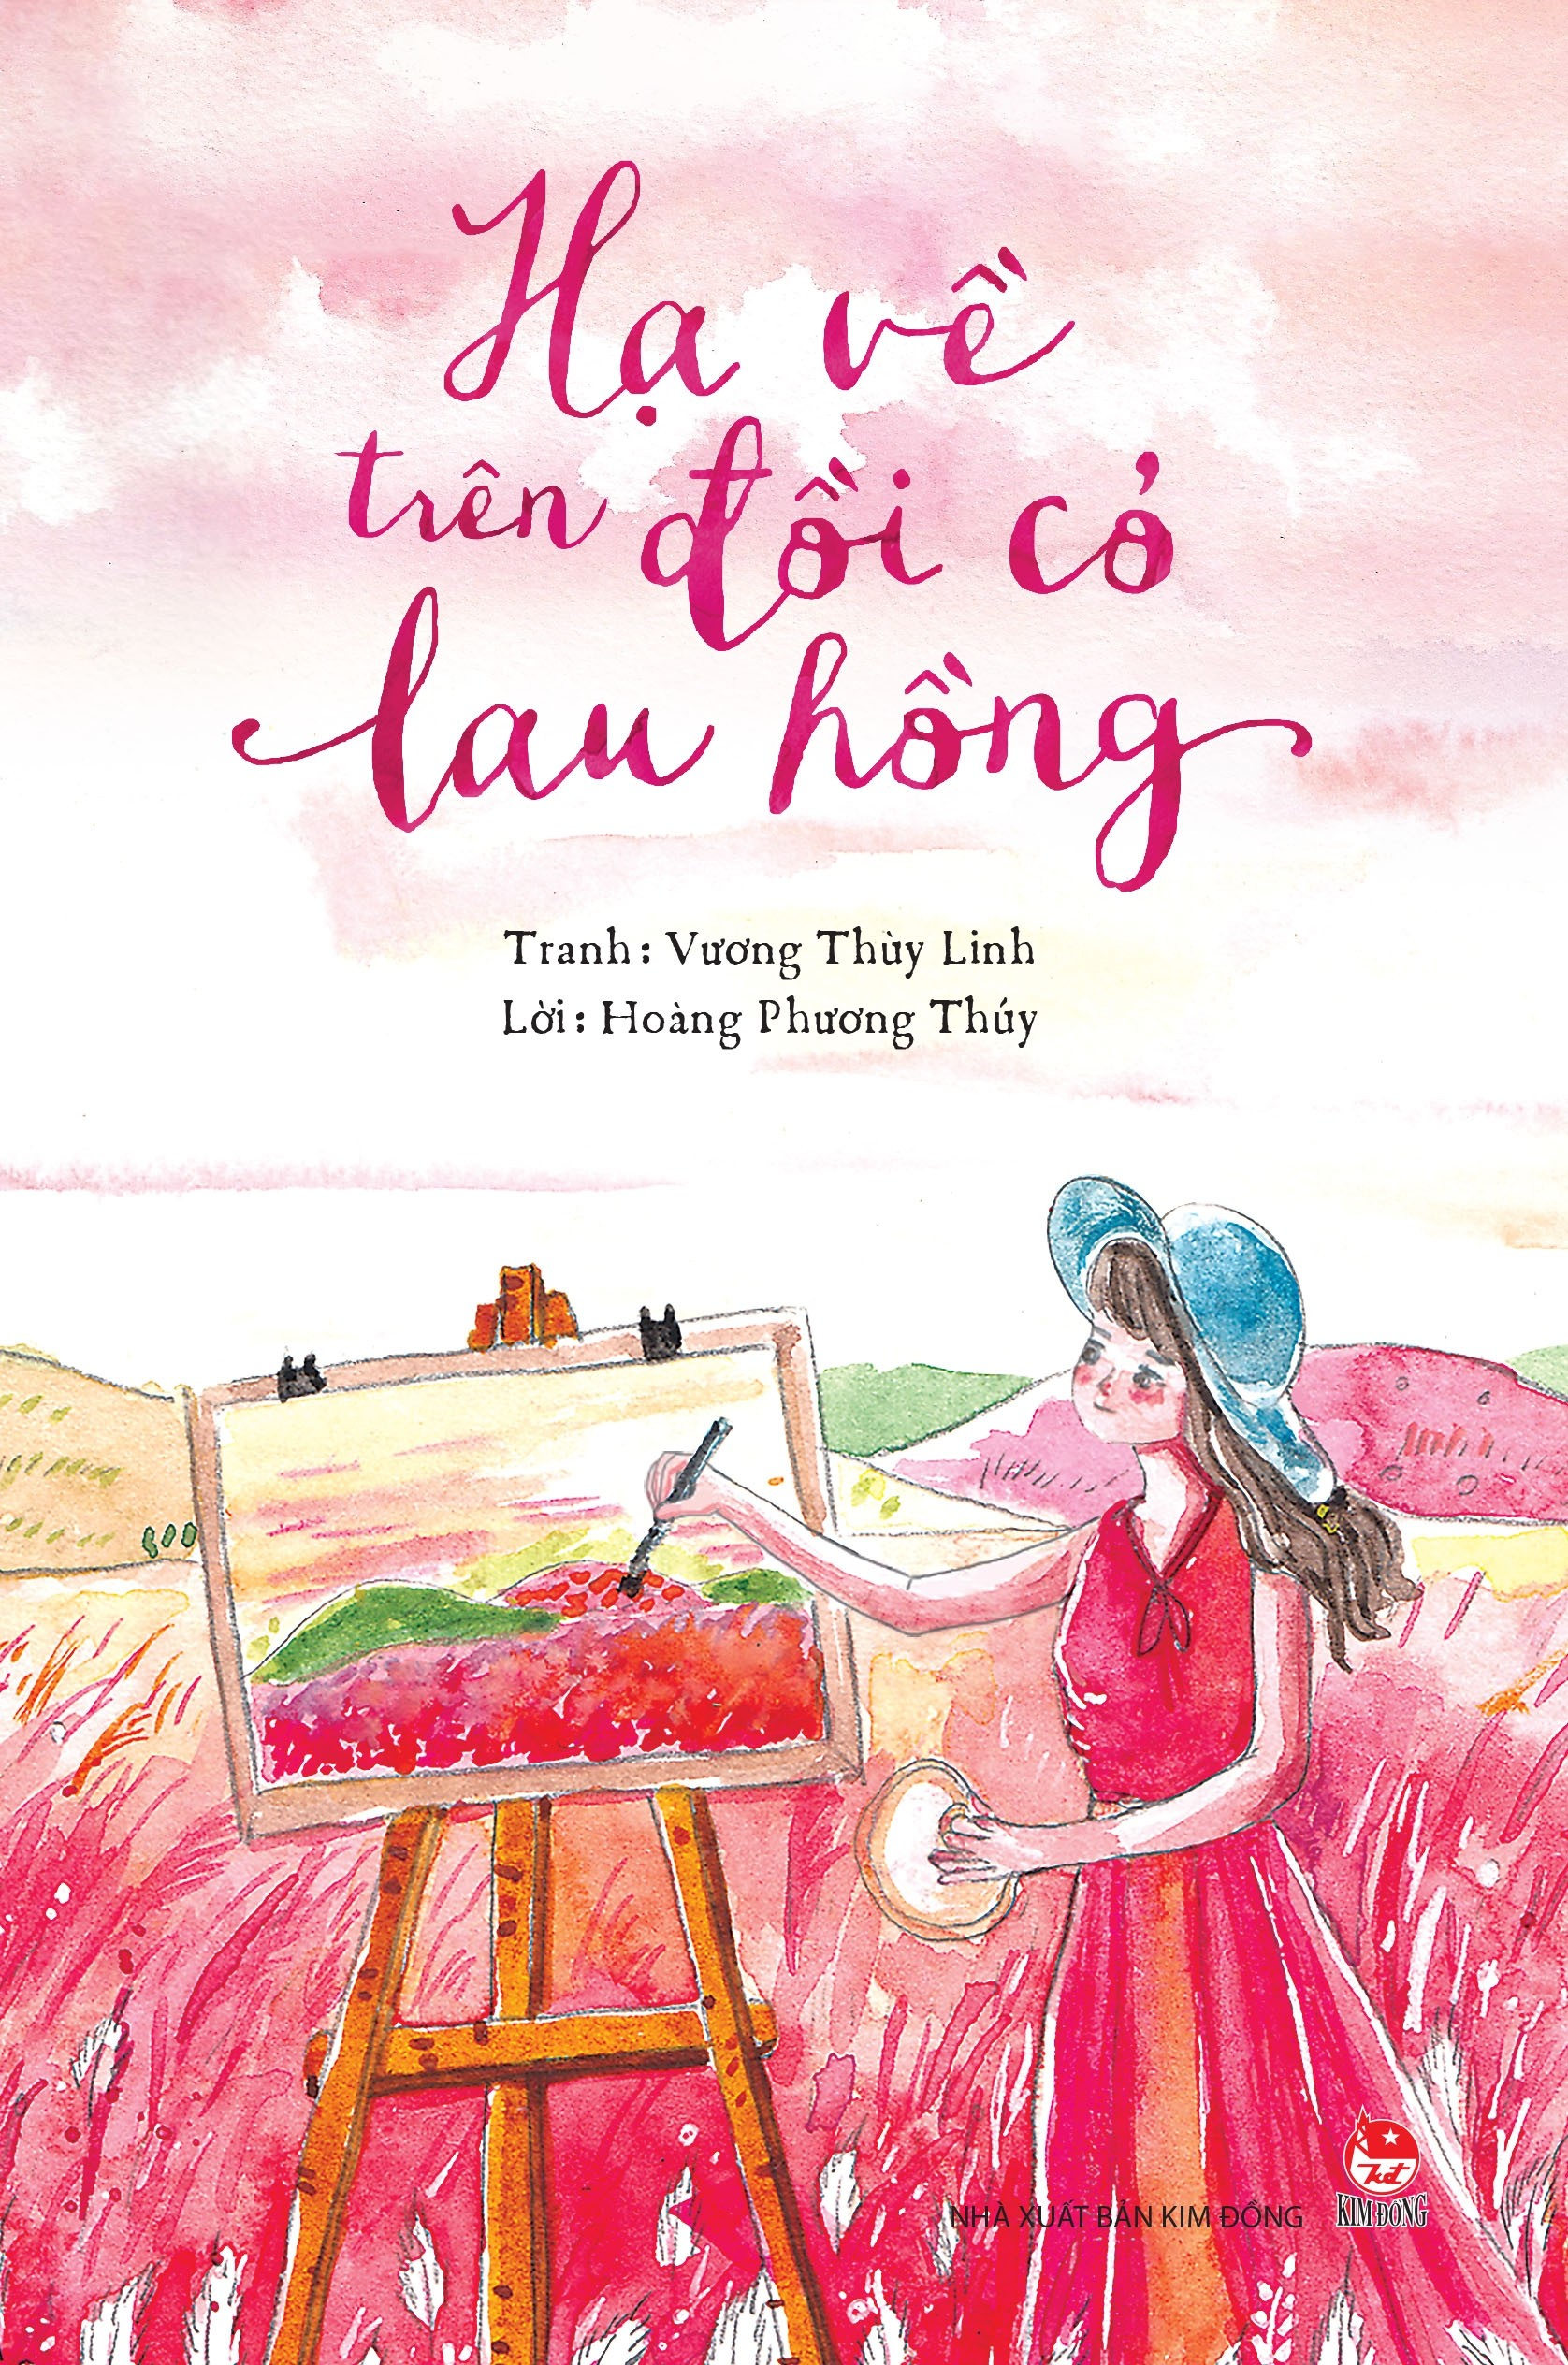 ha ve tren doi co lau hong